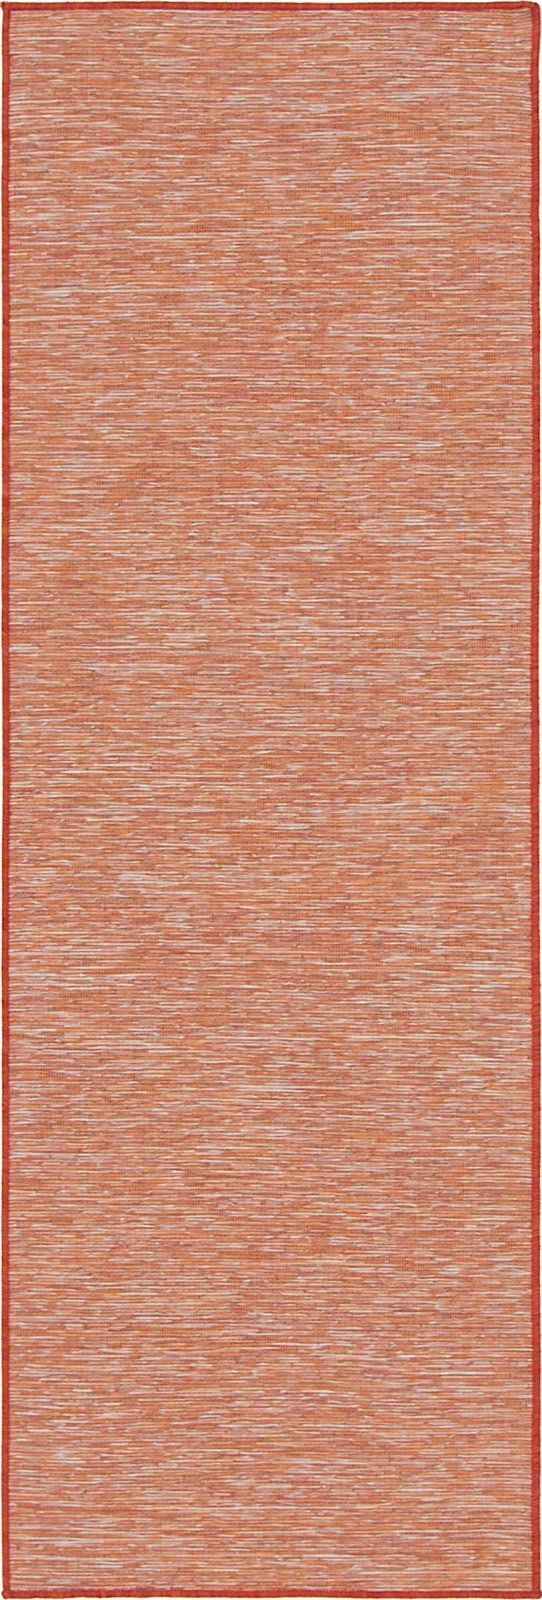 rugpal garden variety solid/striped area rug collection